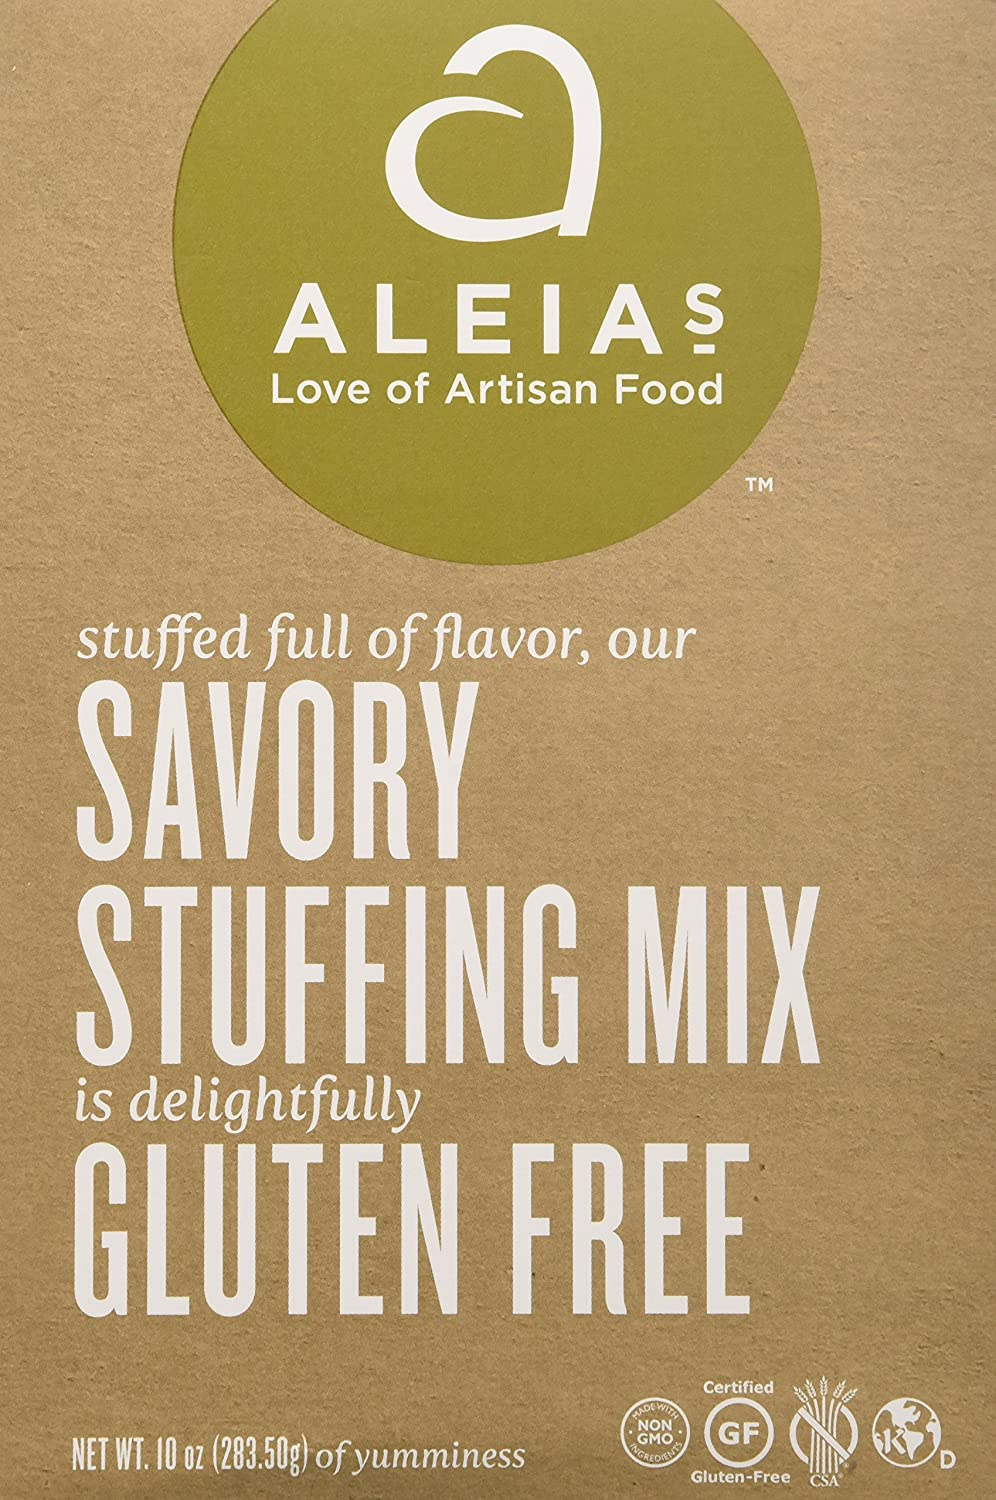 Aleia's Gluten Free Foods Stuffing Mix, Savory, Gf, 10-Ounce (Pack of 3)